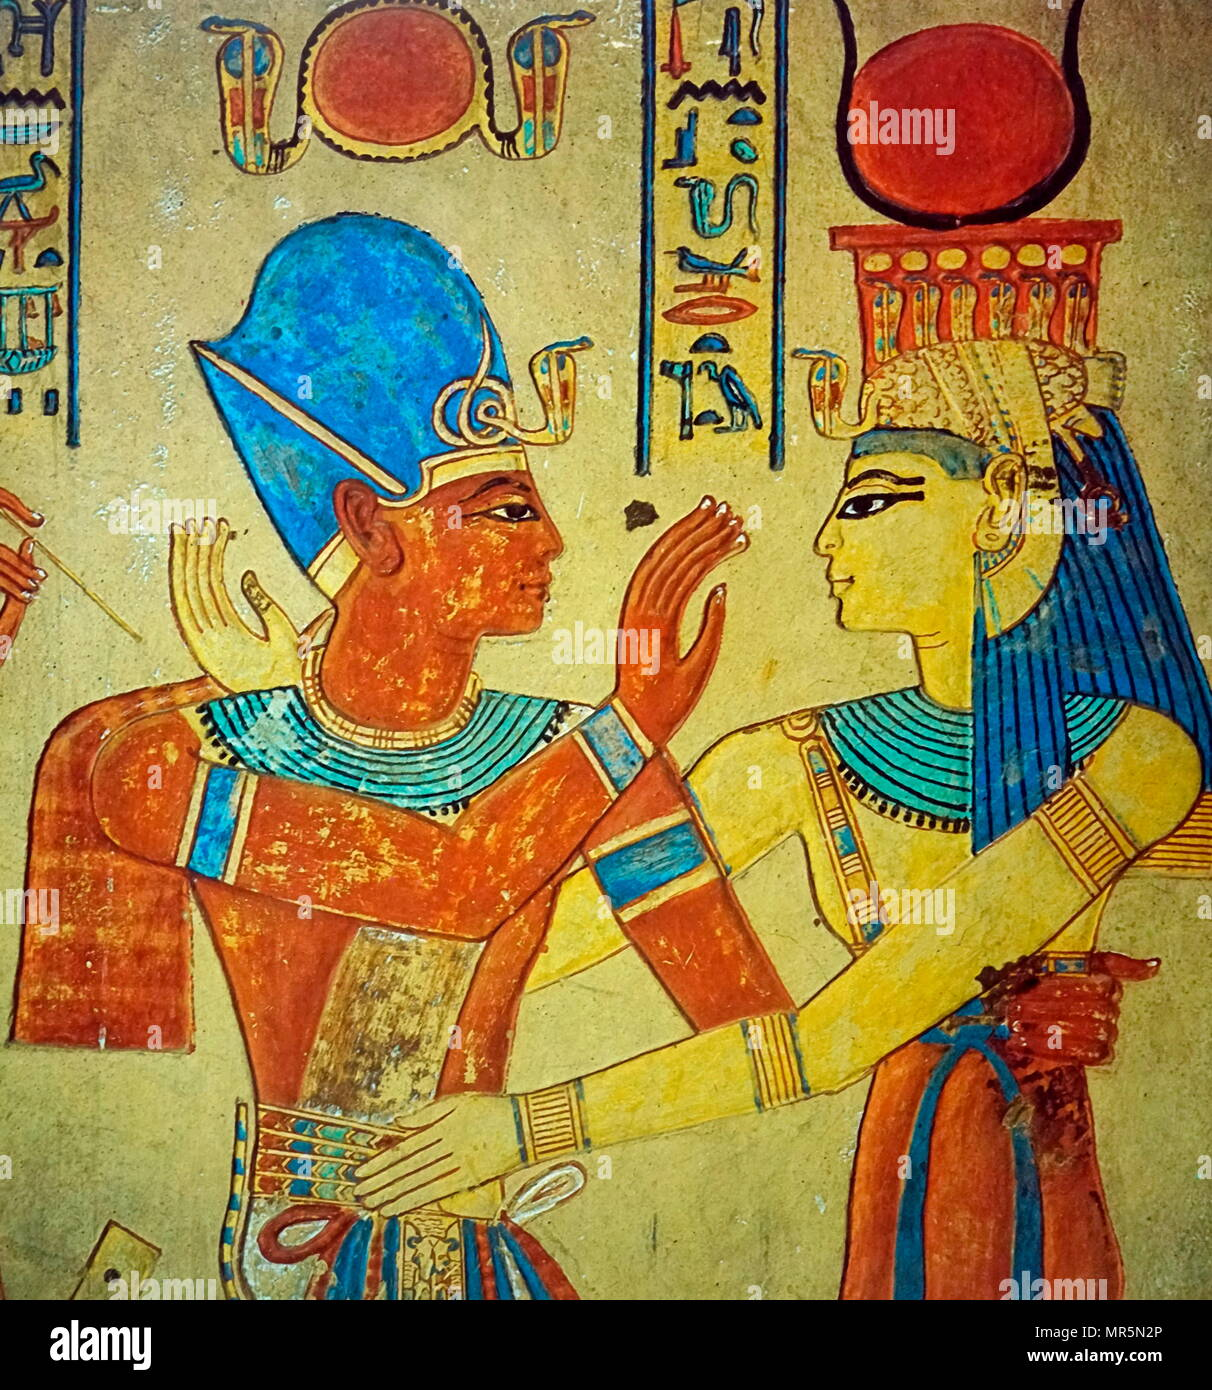 Relief from the Tomb  of Prince Amunherkhepeshef (Twentieth Dynasty). Valley of the Kings. The goddess Isis depicted embracing Ramesses III. Usimare Ramesses III (also written Ramses and Rameses) was the second Pharaoh of the Twentieth Dynasty and is considered to be the last monarch of the New Kingdom to wield any substantial authority over Egypt - Stock Image